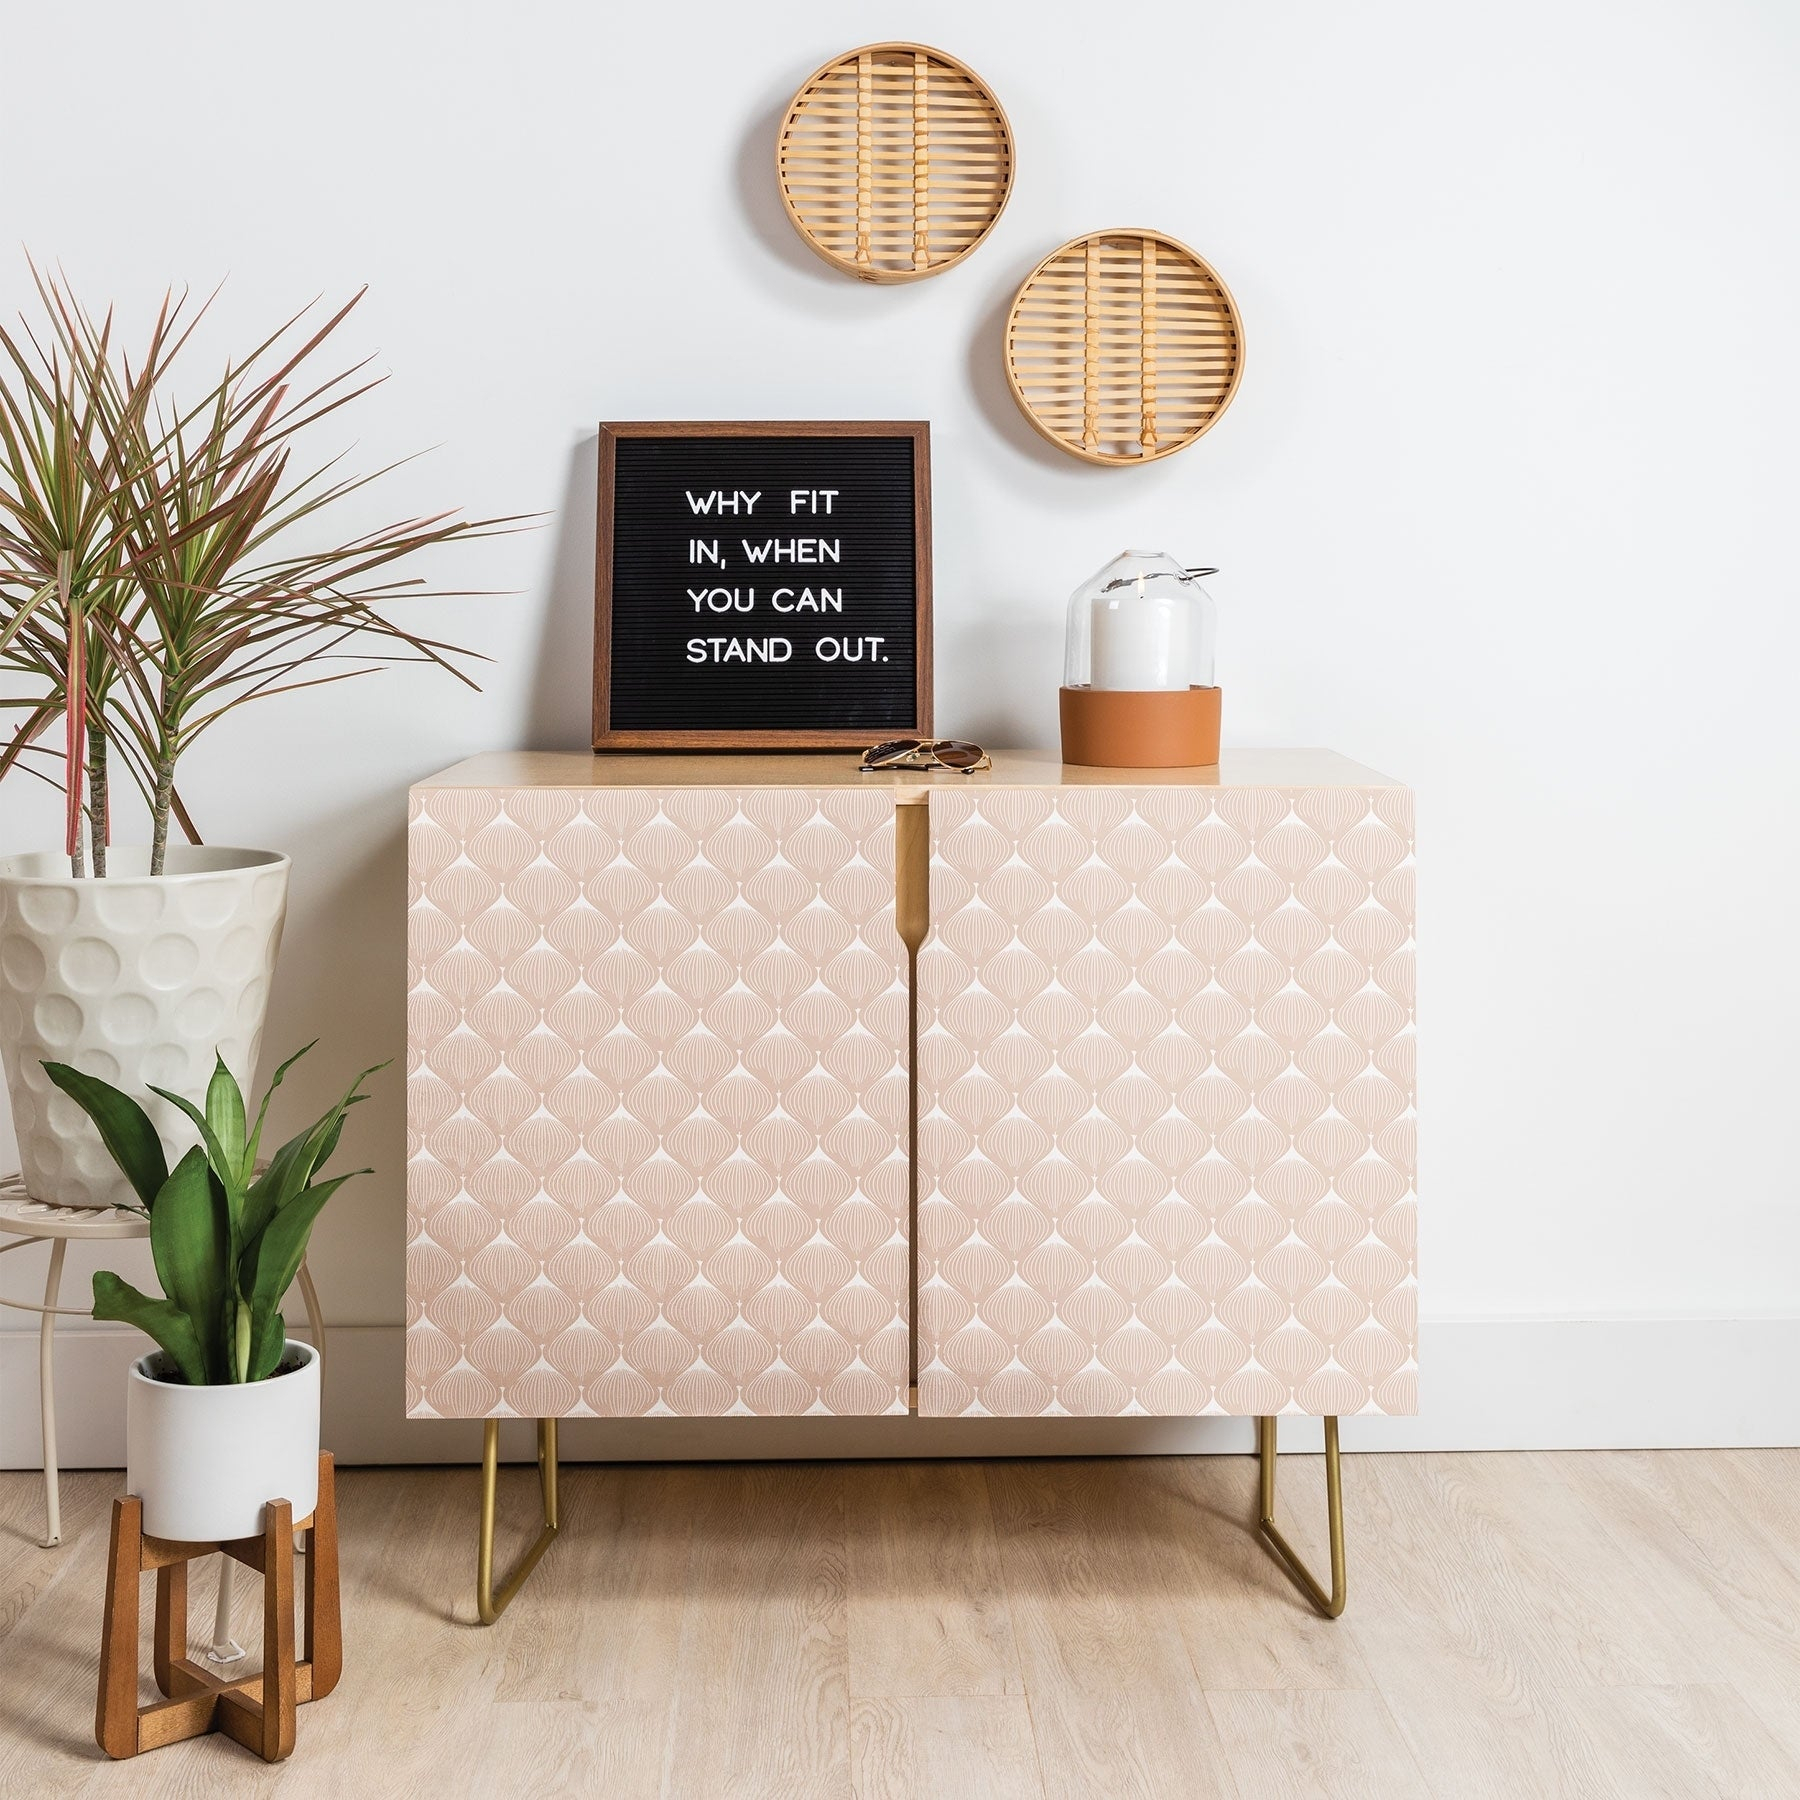 Deny Designs Pale Pink Bulbs Credenza (Birch Or Walnut, 2 Leg Options) Throughout Pale Pink Bulbs Credenzas (Photo 1 of 30)